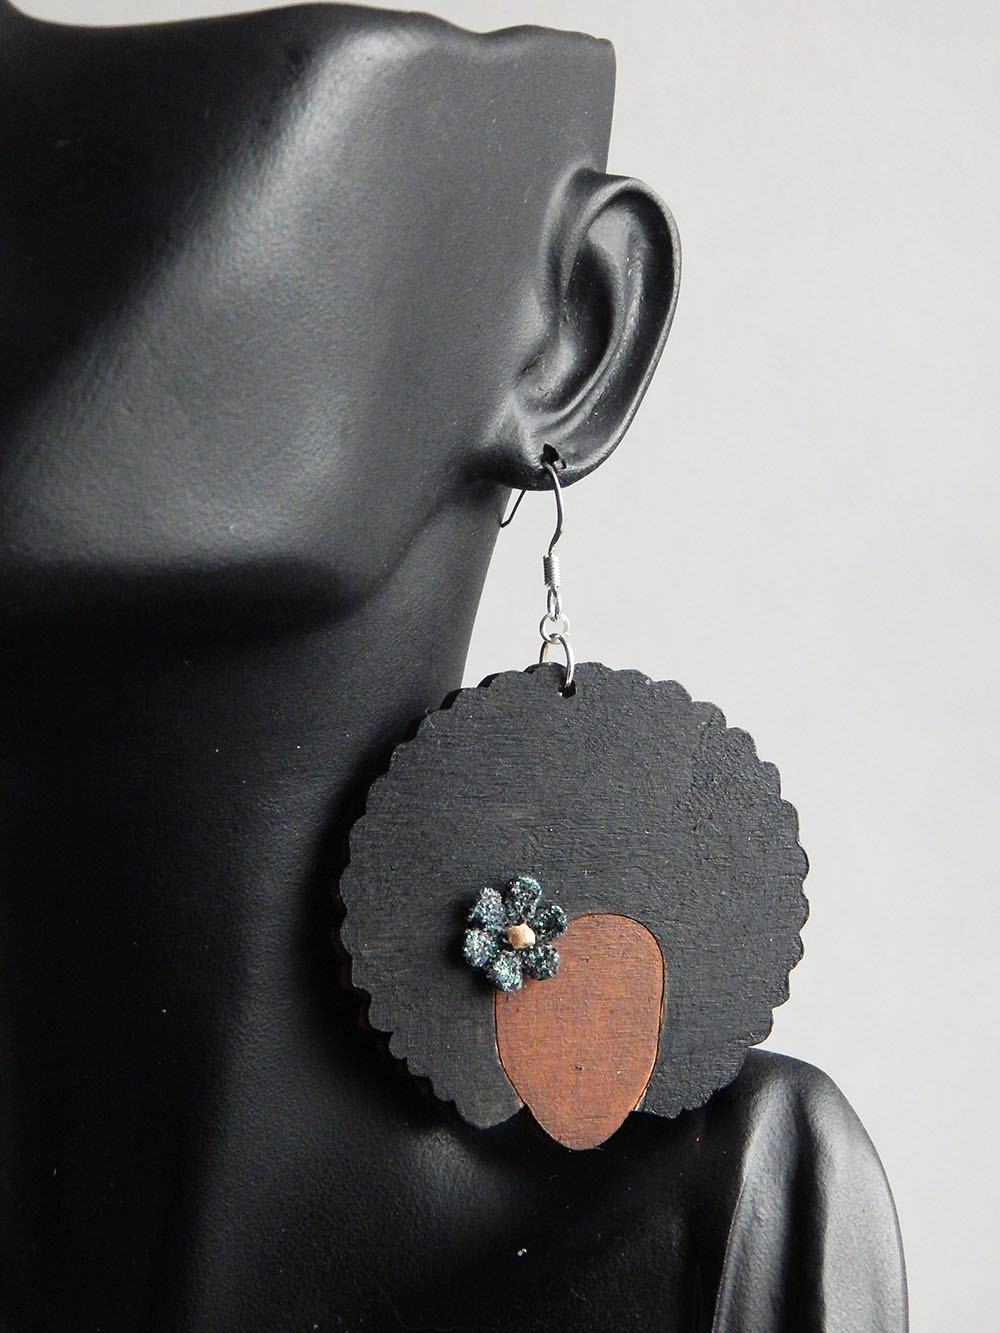 21++ African american owned jewelry stores ideas in 2021